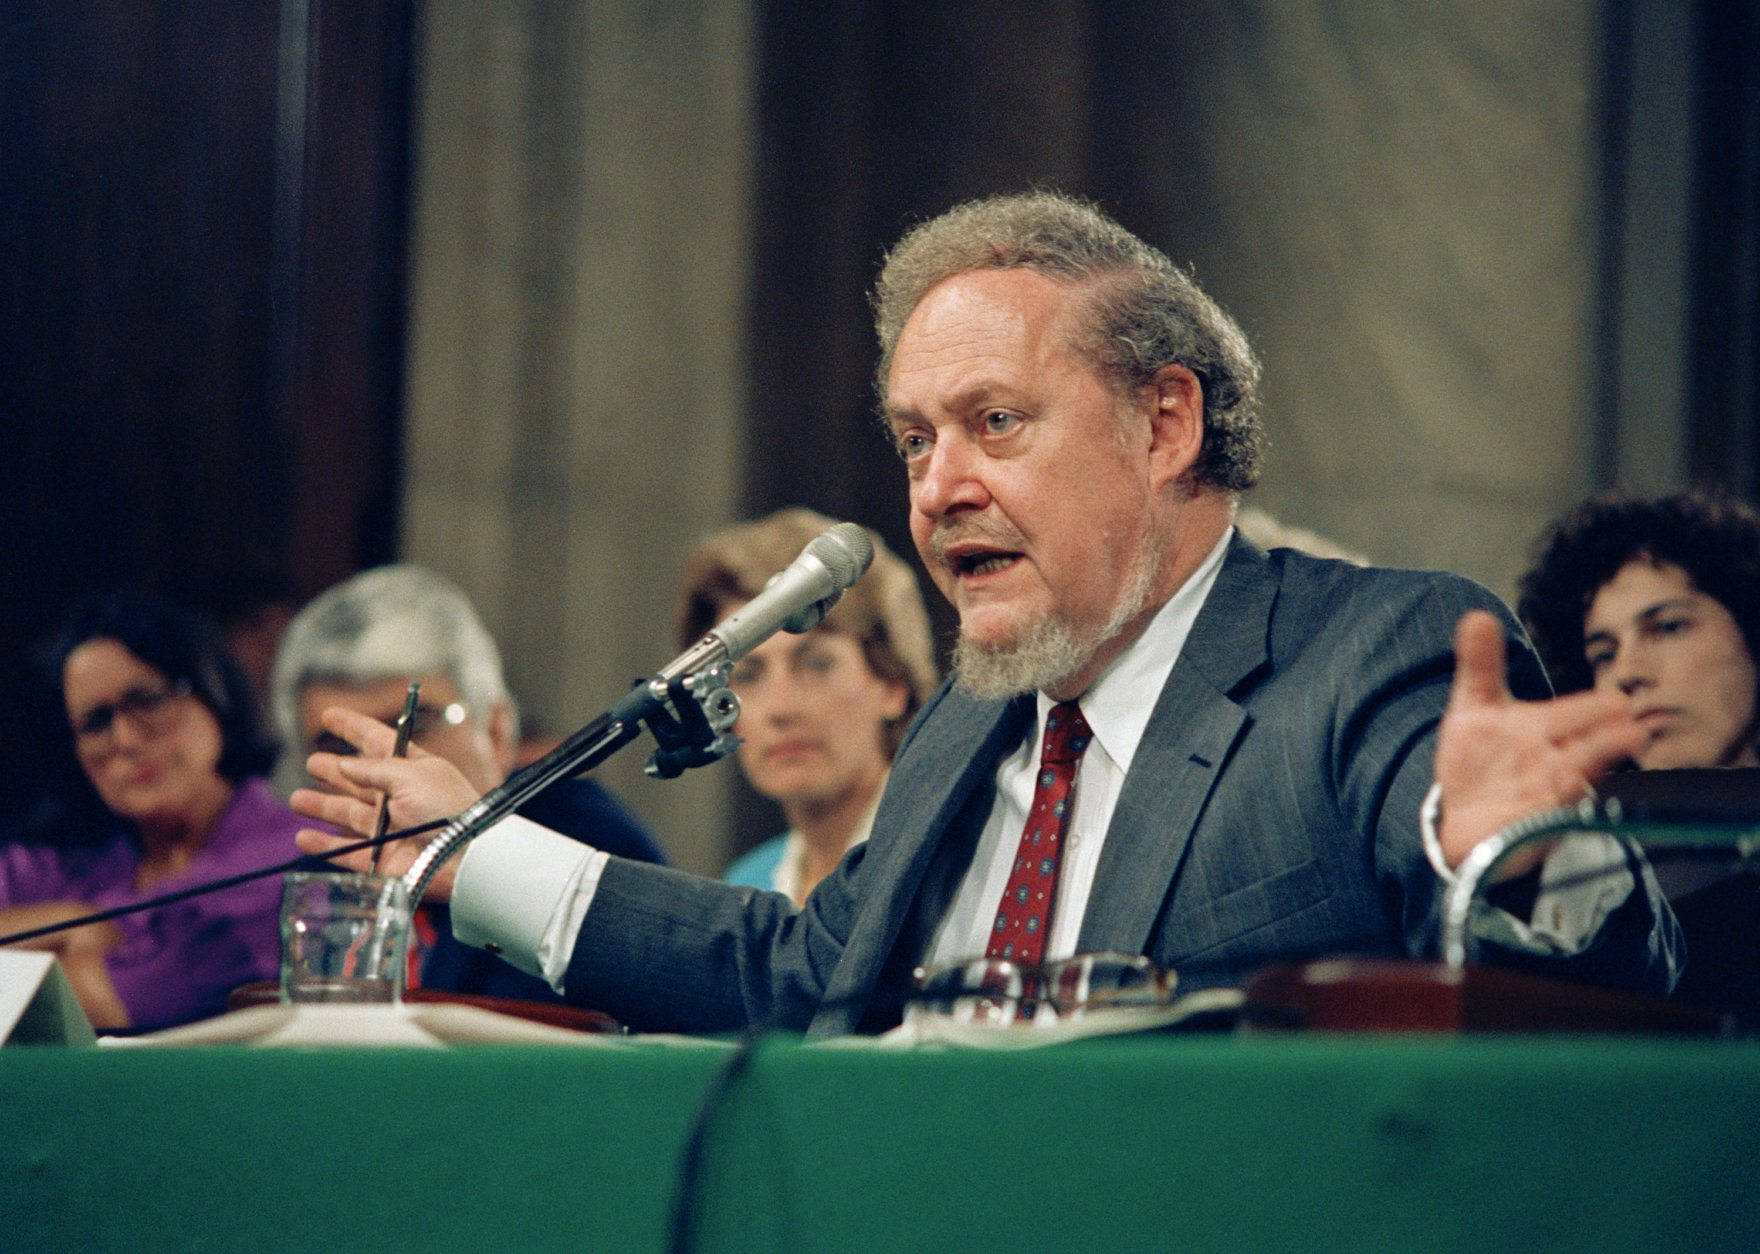 Supreme Court Justice nominee Robert H. Bork gestures as he testifies on Capitol Hill, before the Senate Judiciary Committee holding his confirmation hearings, Sept. 16, 1987. Bork denied that he acted illegally in firing special Watergate prosecutor Archibald Cox 14 years ago. (AP Photo/John Duricka)